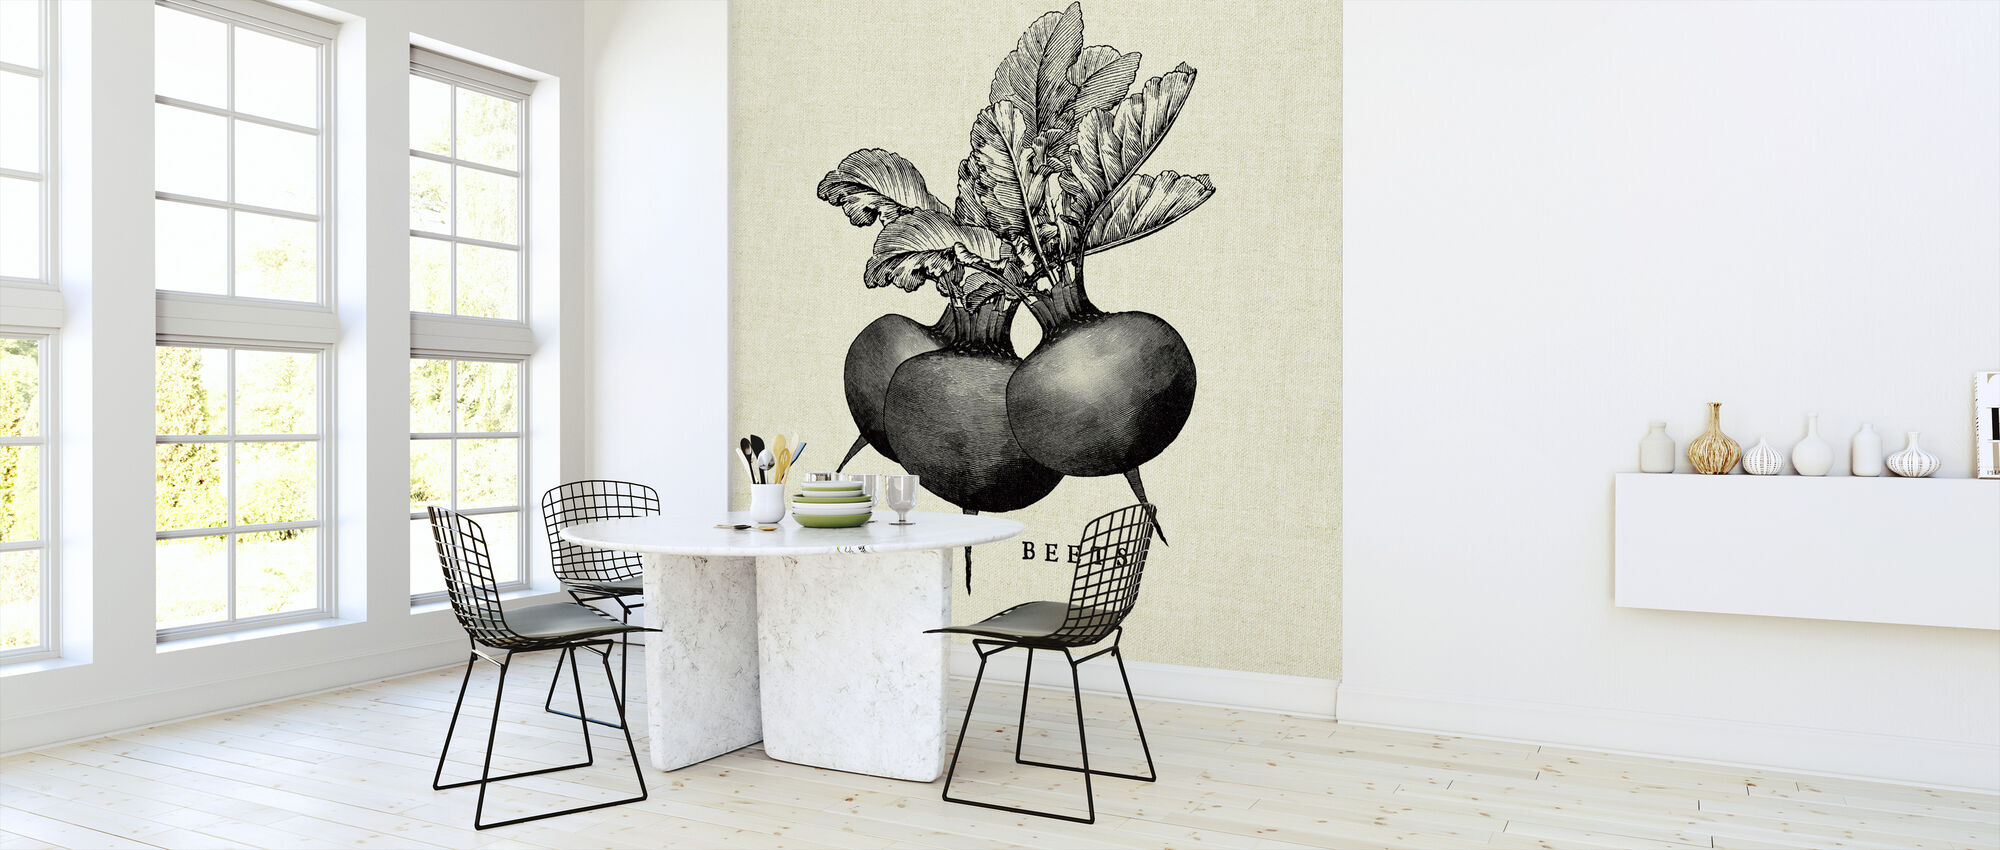 Kitchen Illustration - Beets - Wallpaper - Kitchen